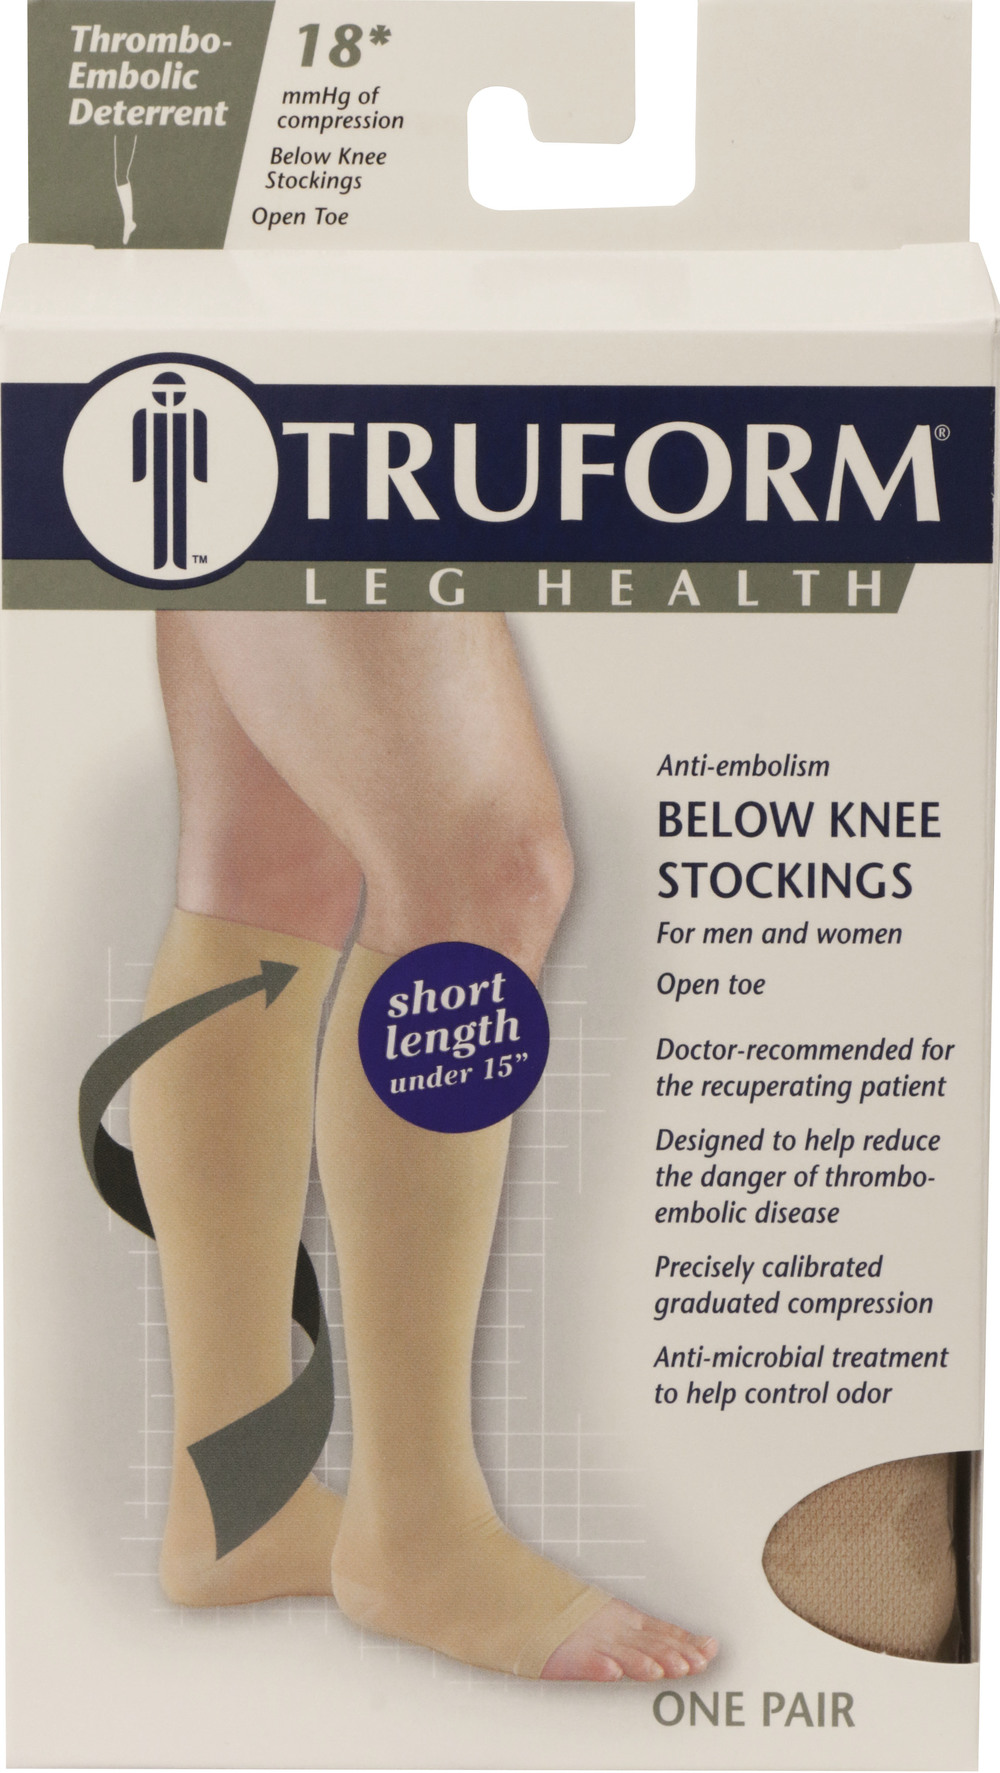 Truform, 0808s, 18 mmHg, Anti-Embolism, Open Toe, Knee High, Short Length, Stockings, Package